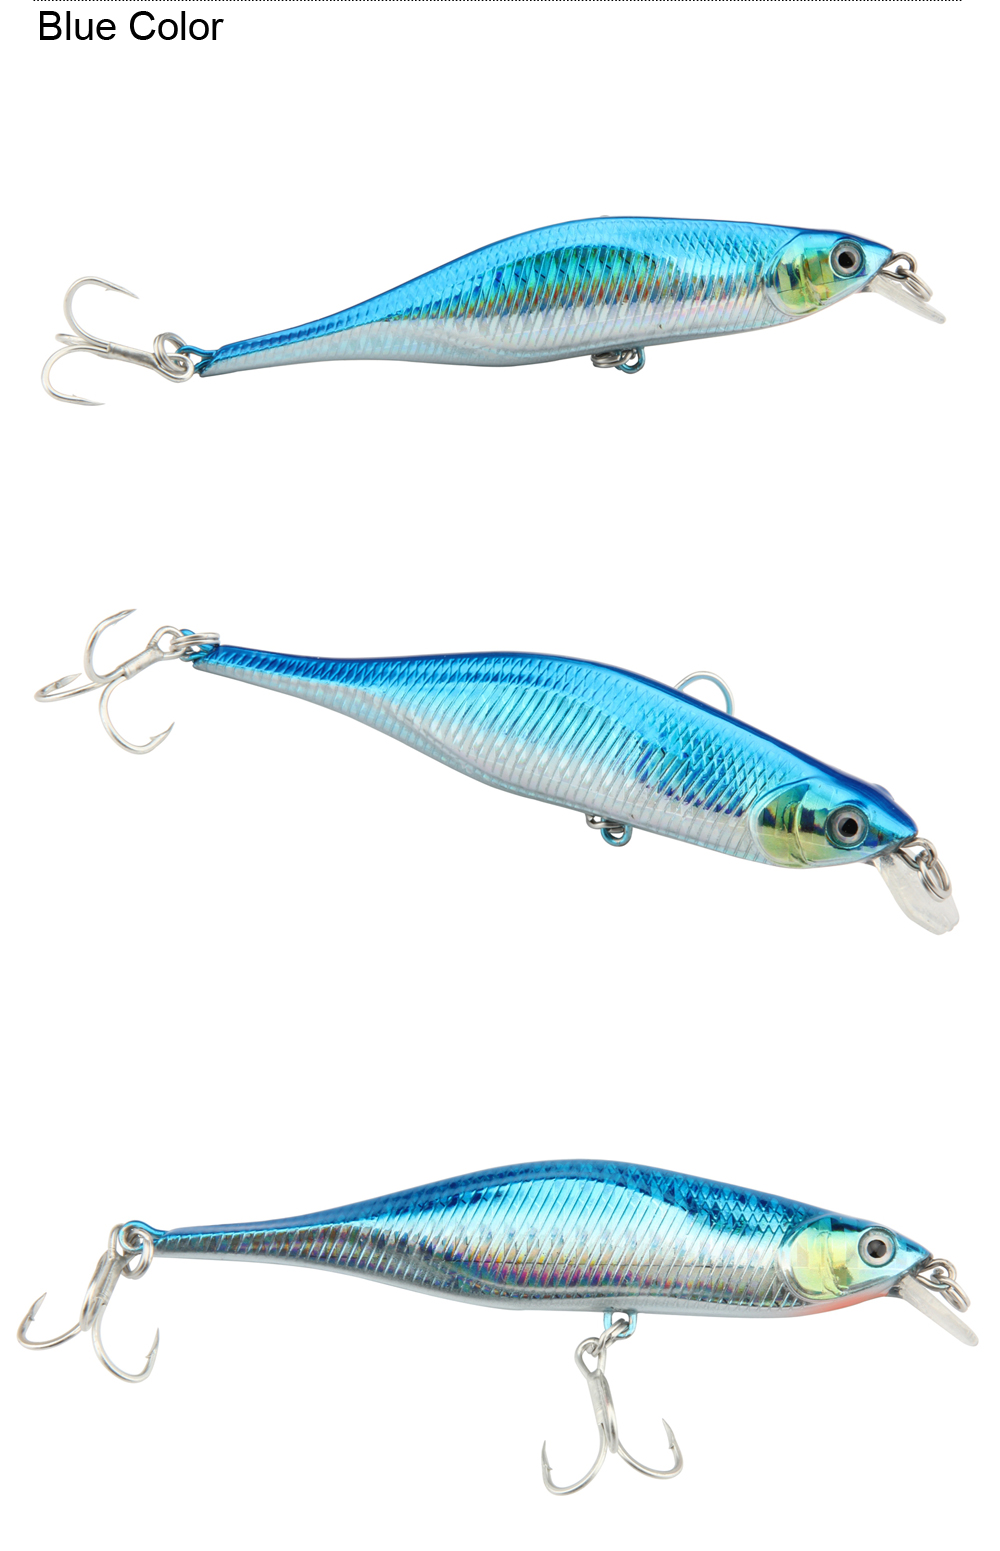 2017 Spinpoler New Fishing Lures,Minnow Crank 11cm 11g.Artificial Japan Hard Bait Wobbler Swimbait Hot Model Crank Bait 5 Colors  (7)